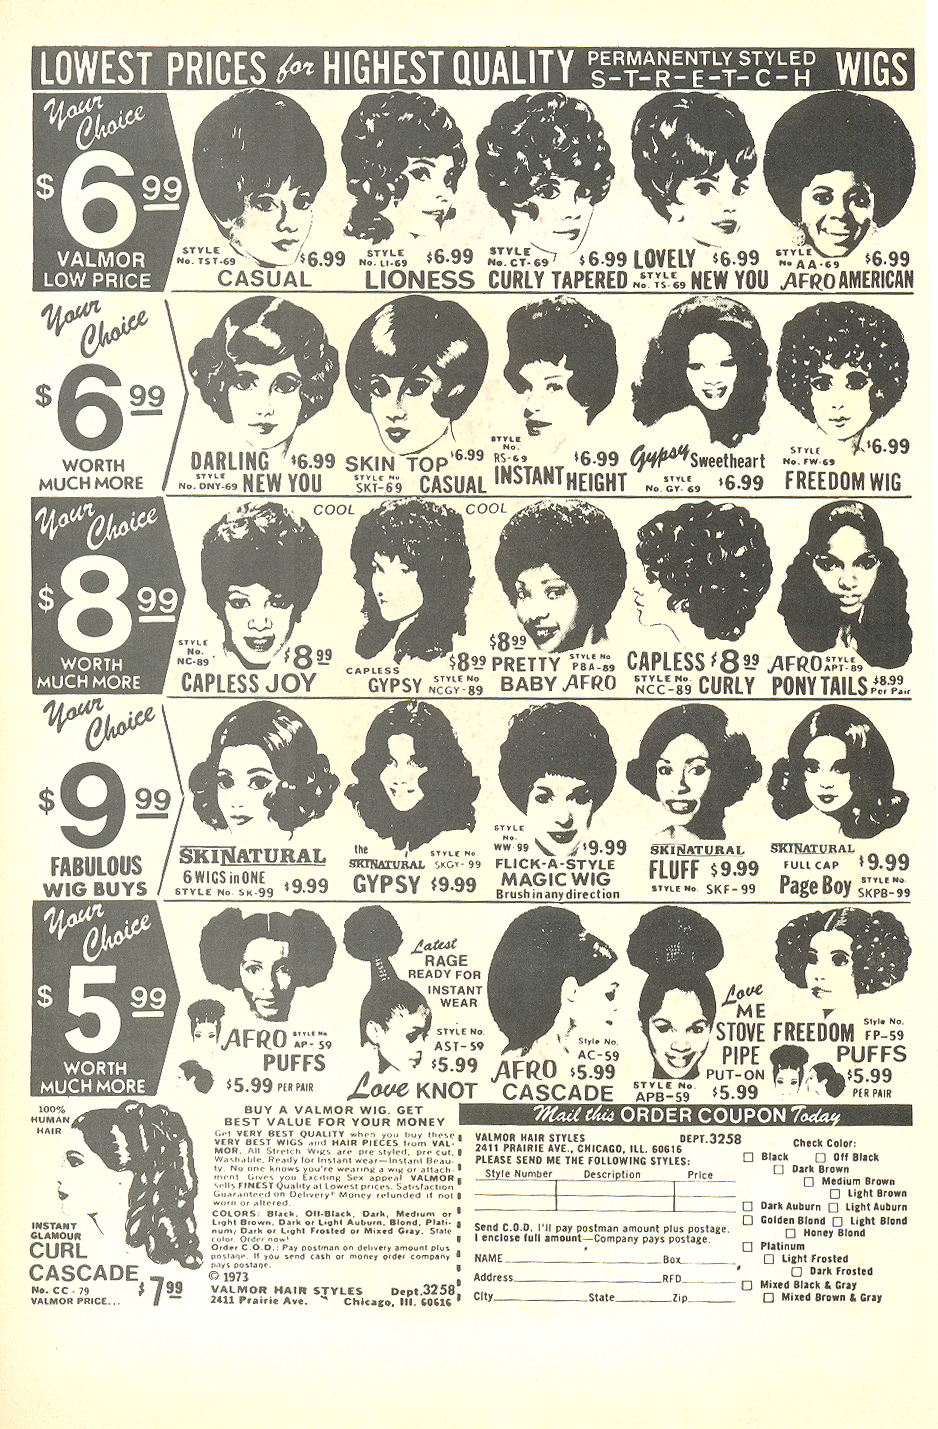 1973 wig and fall advertisement